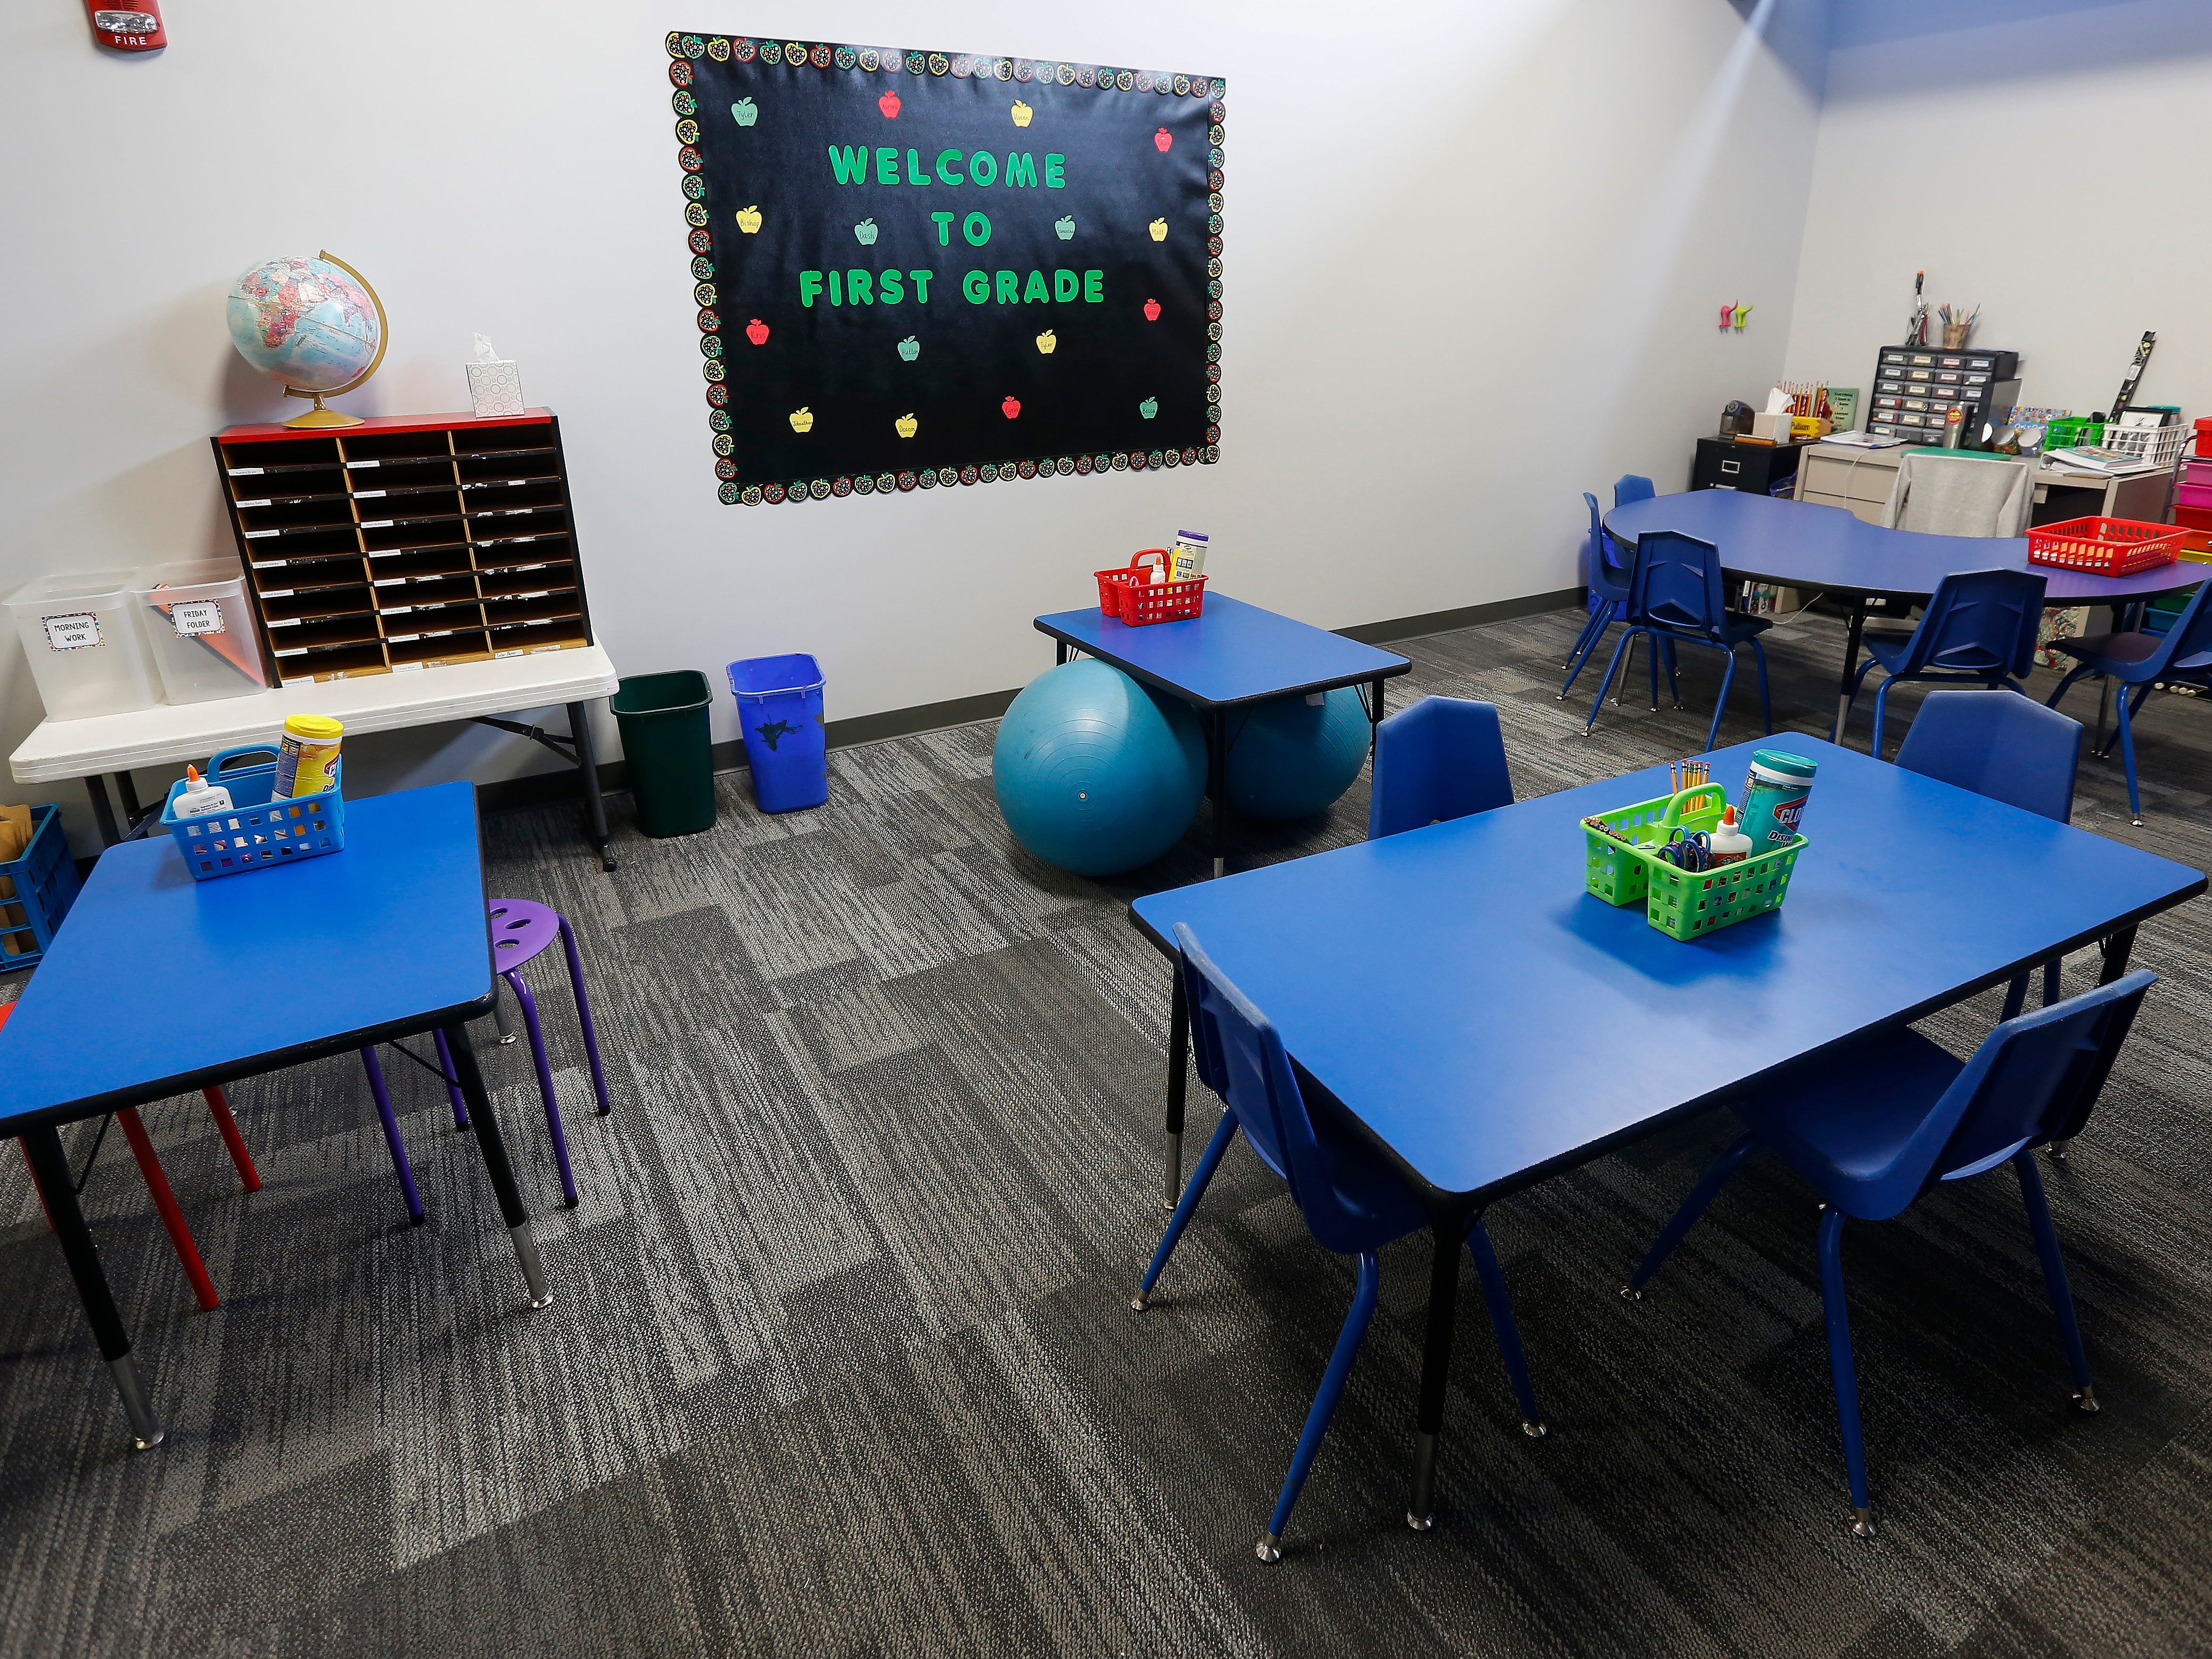 The 1st grade classroom at the Summit Preparatory School's new location at 202 E. Walnut Lawn St.